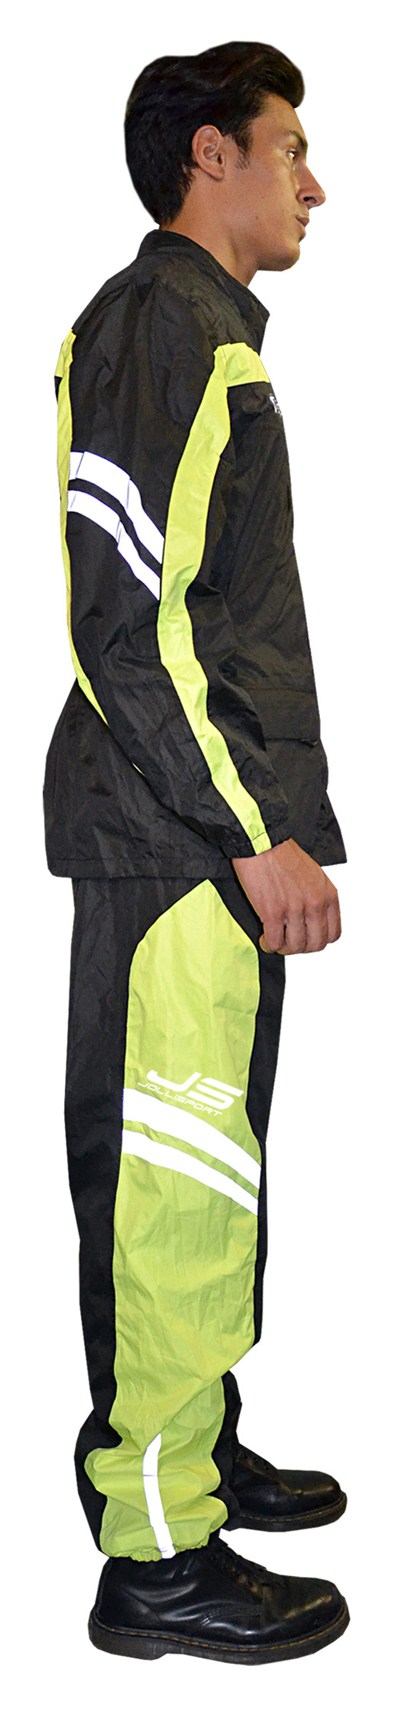 Rain suit divisible Jollisport Maja Black Yellow fluo